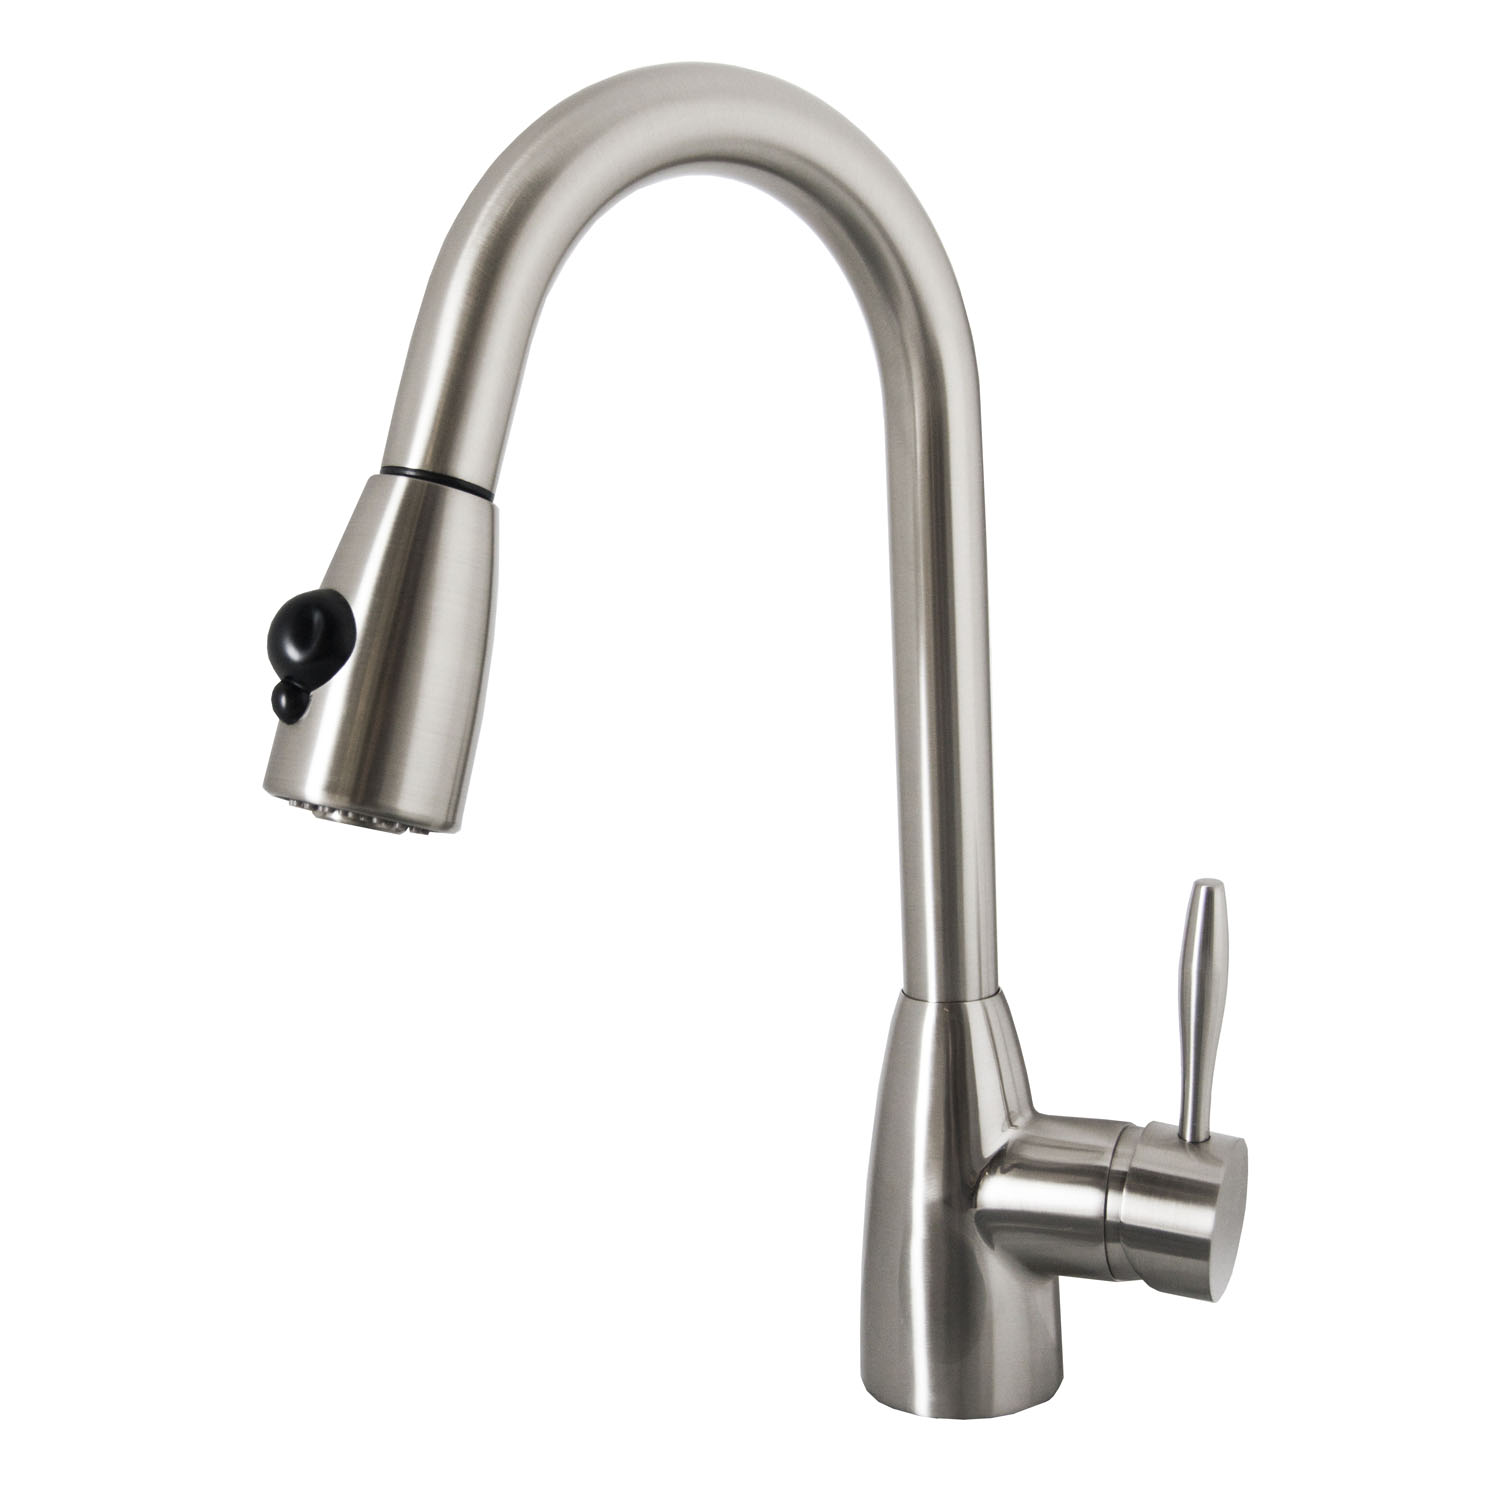 Neptune 1001 Single Hole Kitchen Faucet - PSK-1001 - Kitchen Faucets -  Virtu USA